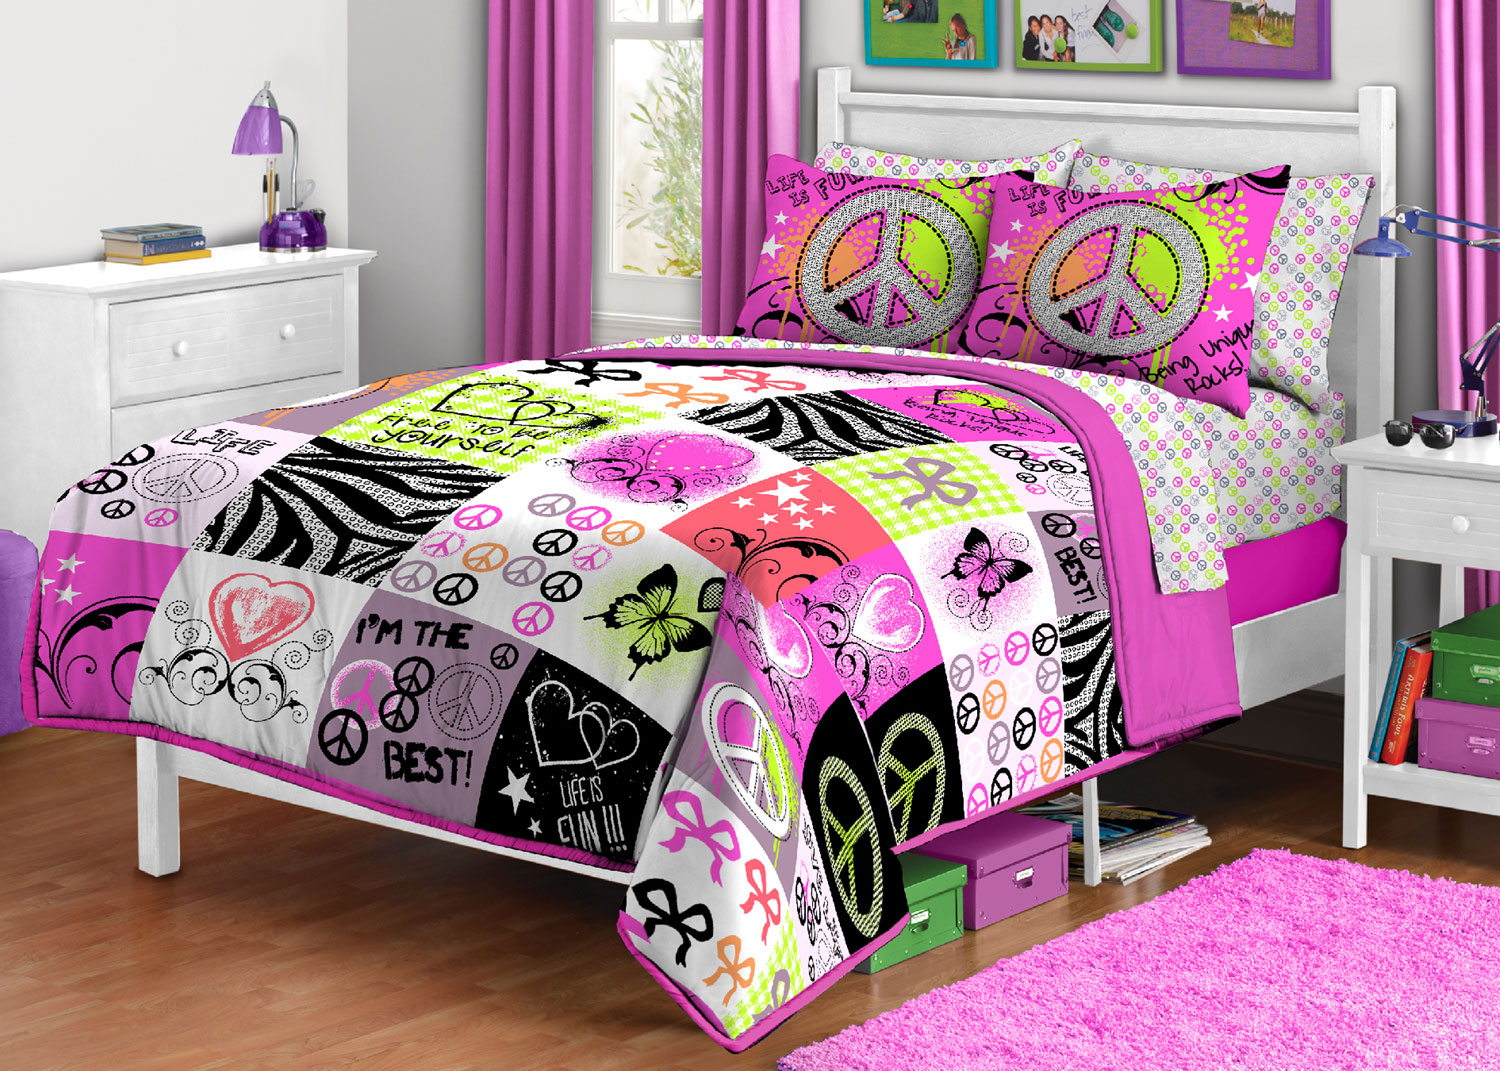 Peace Bedroom Decor Delightful Peace Sign Decorations For Bedrooms Decor Ideas Using A